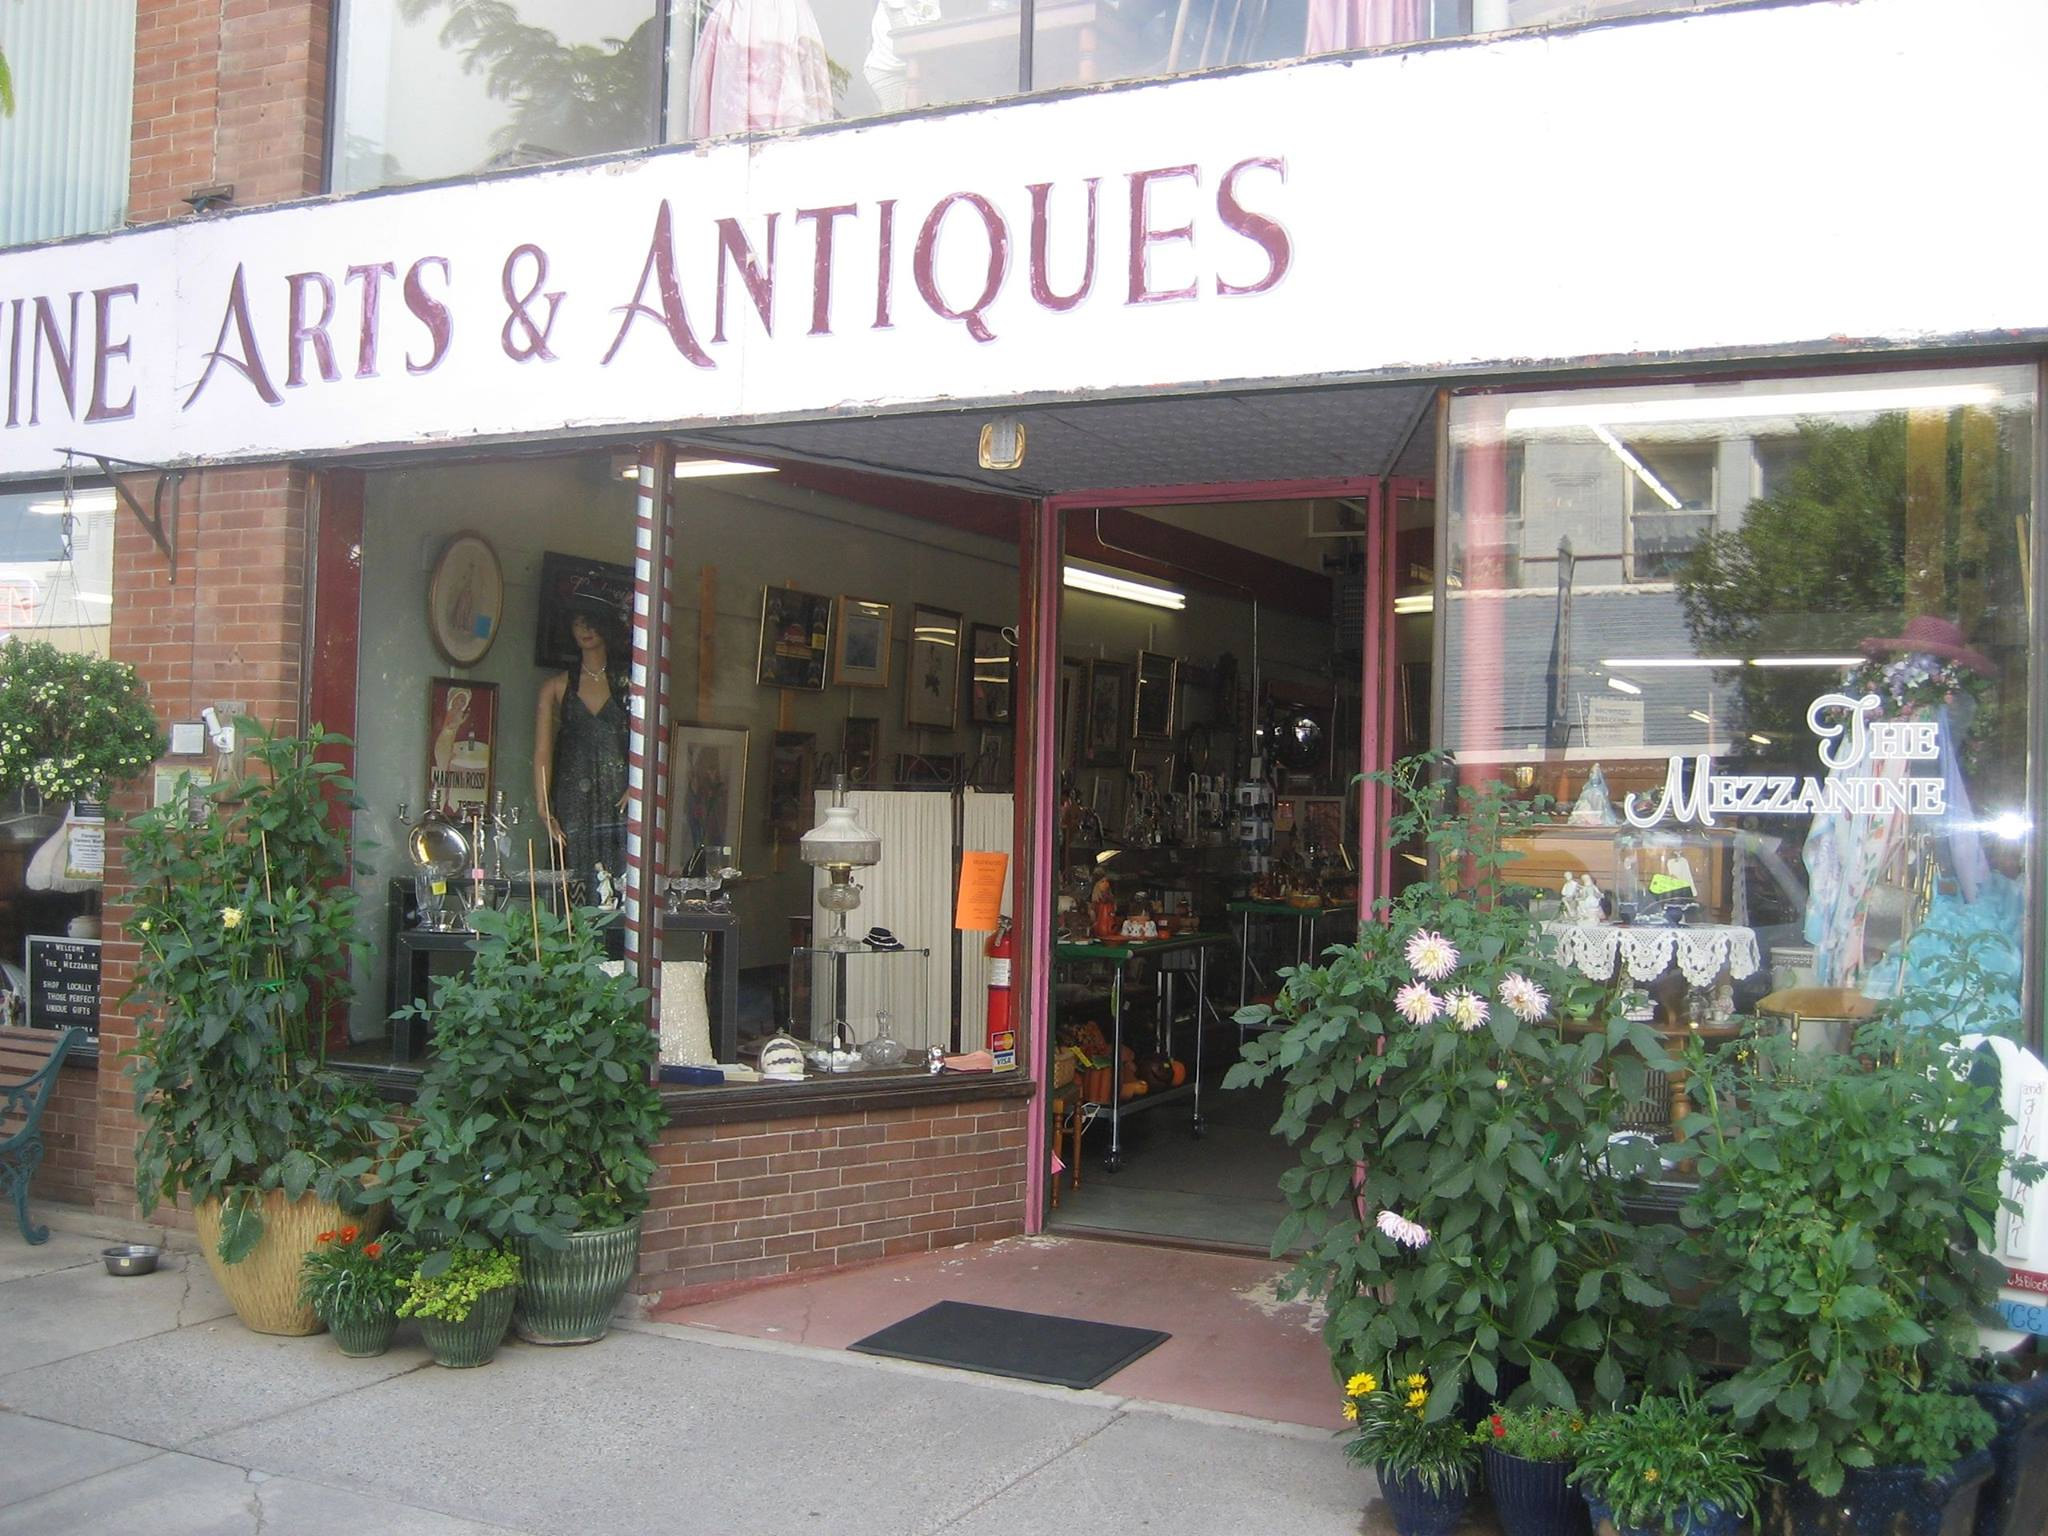 The Mezzanine Antiques and Collectibles